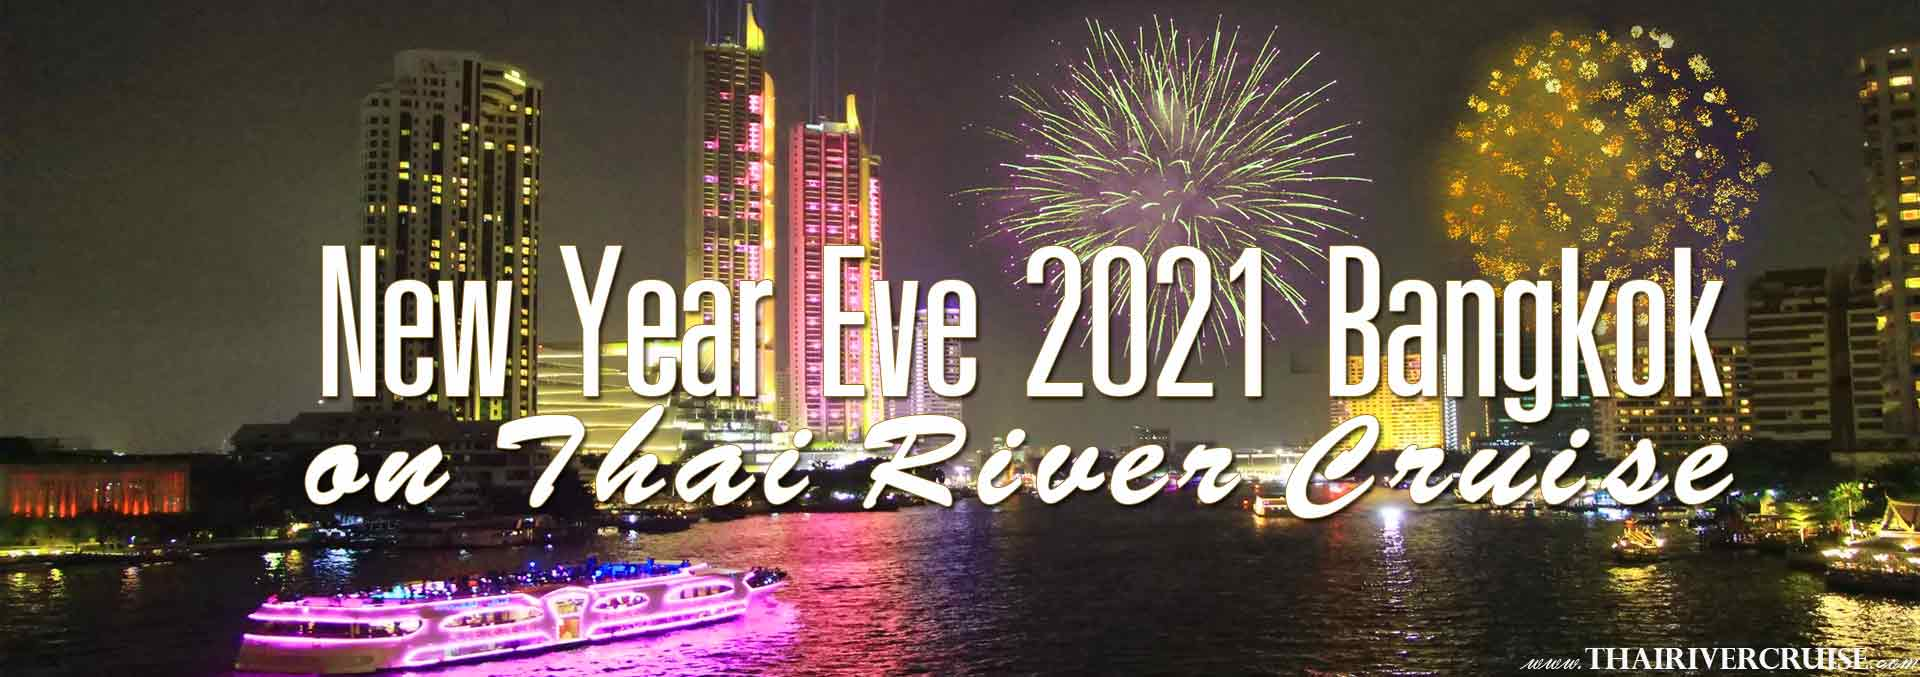 New Years Eve Bangkok 2021 on Thai River Cruise along the Chao Phraya River